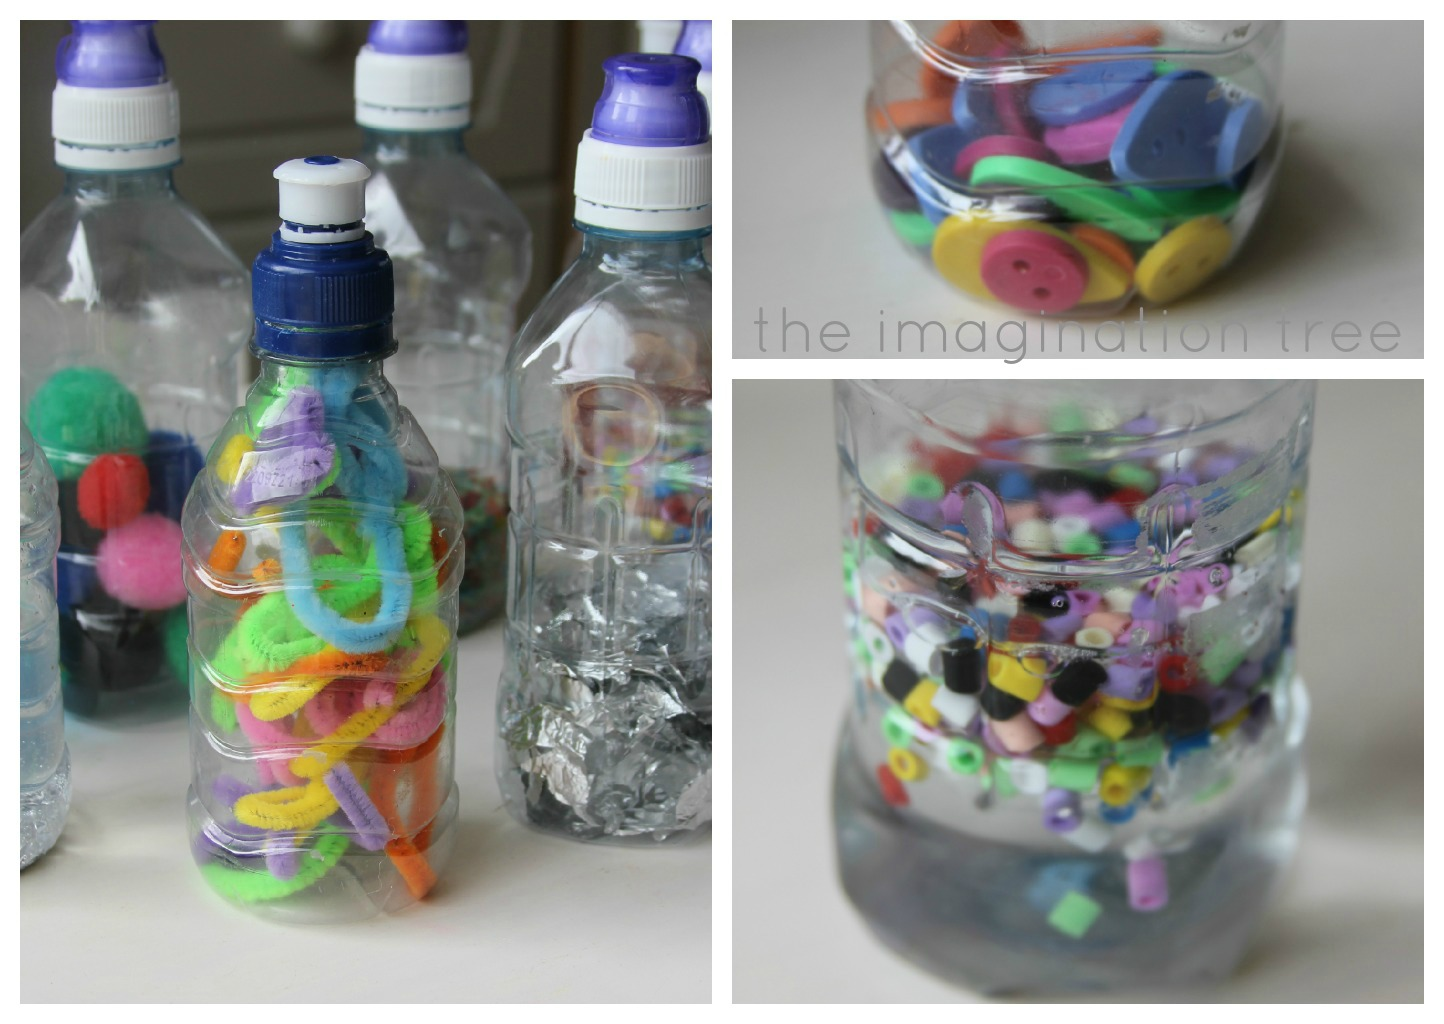 Baby Sensory Play Discovery Bottles The Imagination Tree